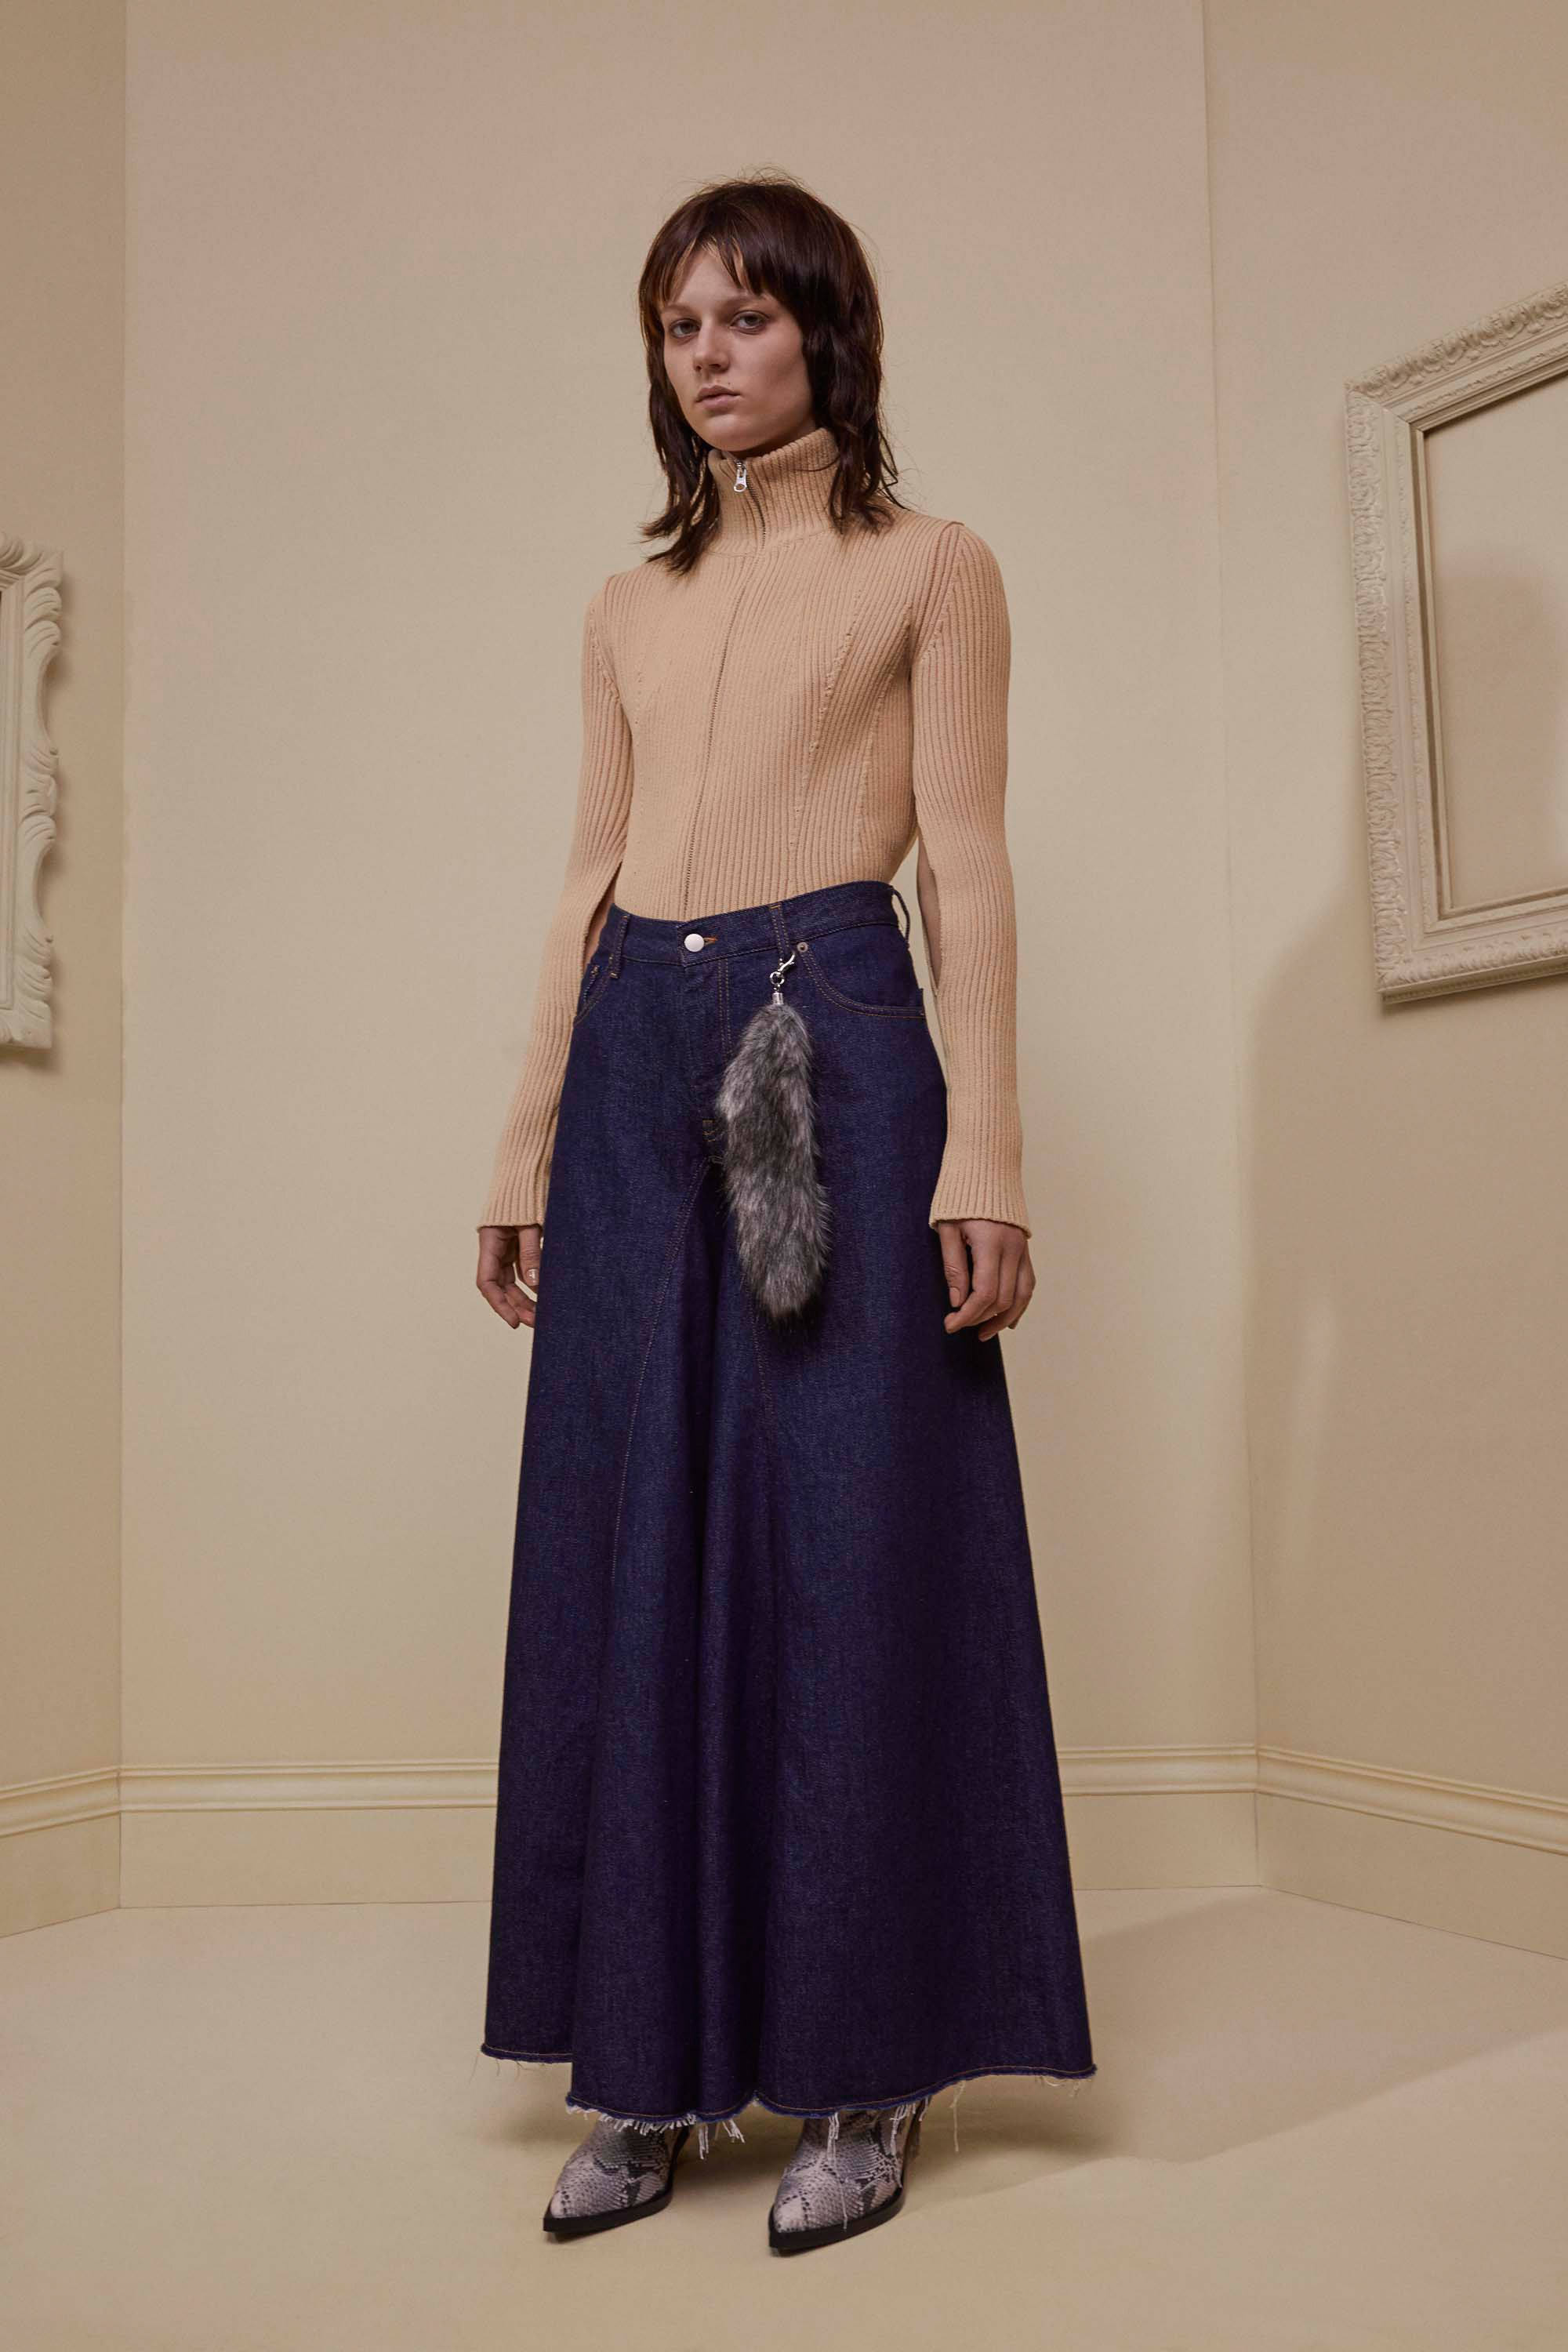 mm6-maison-margiela-pre-fall-2017-fashion-show-the-impression-02